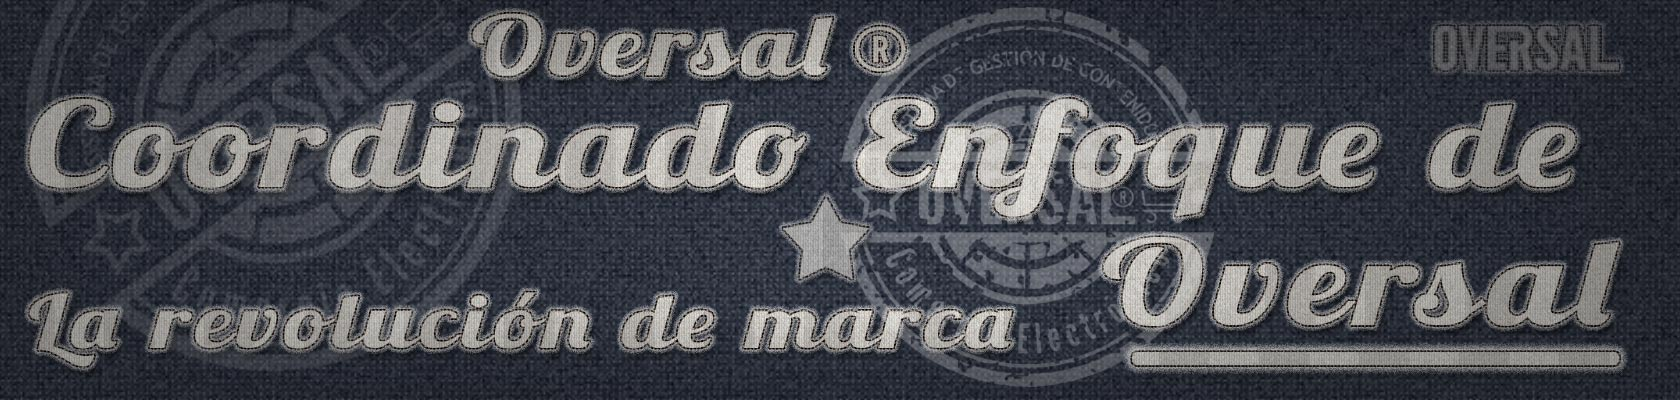 Fabric text and seal - Coordinado enfoque - Oversal